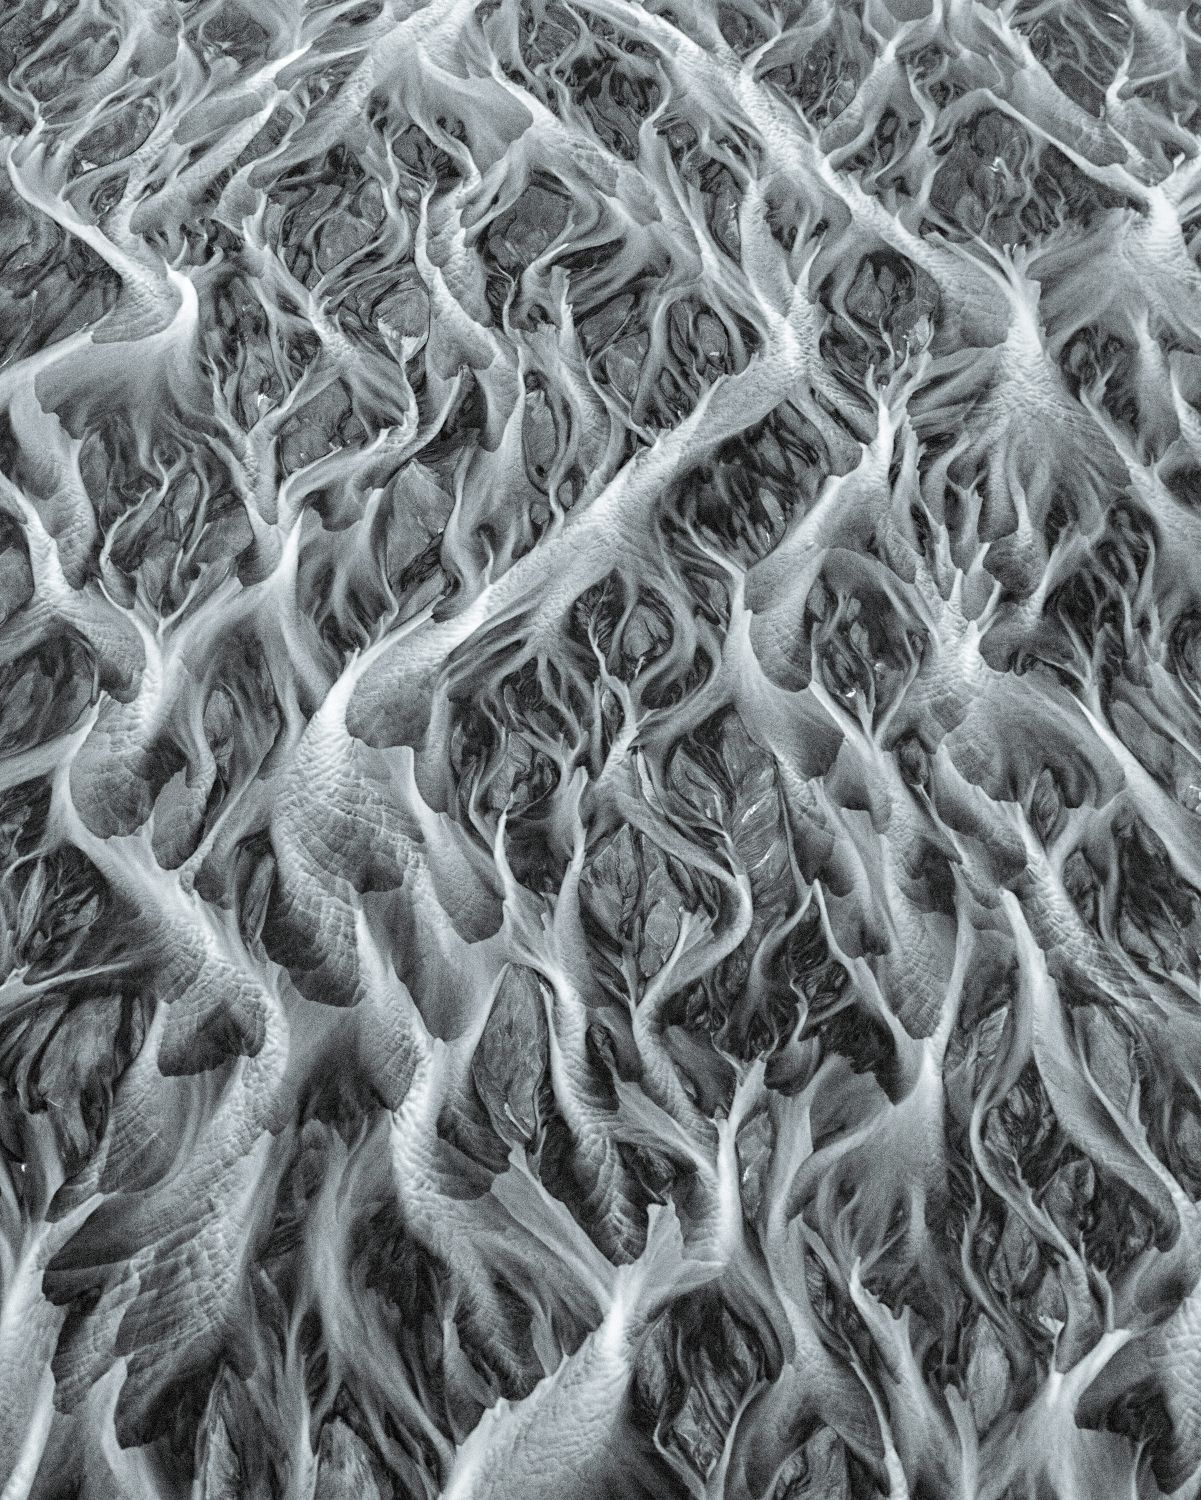 Abstract_Aerial_in_BW.jpg